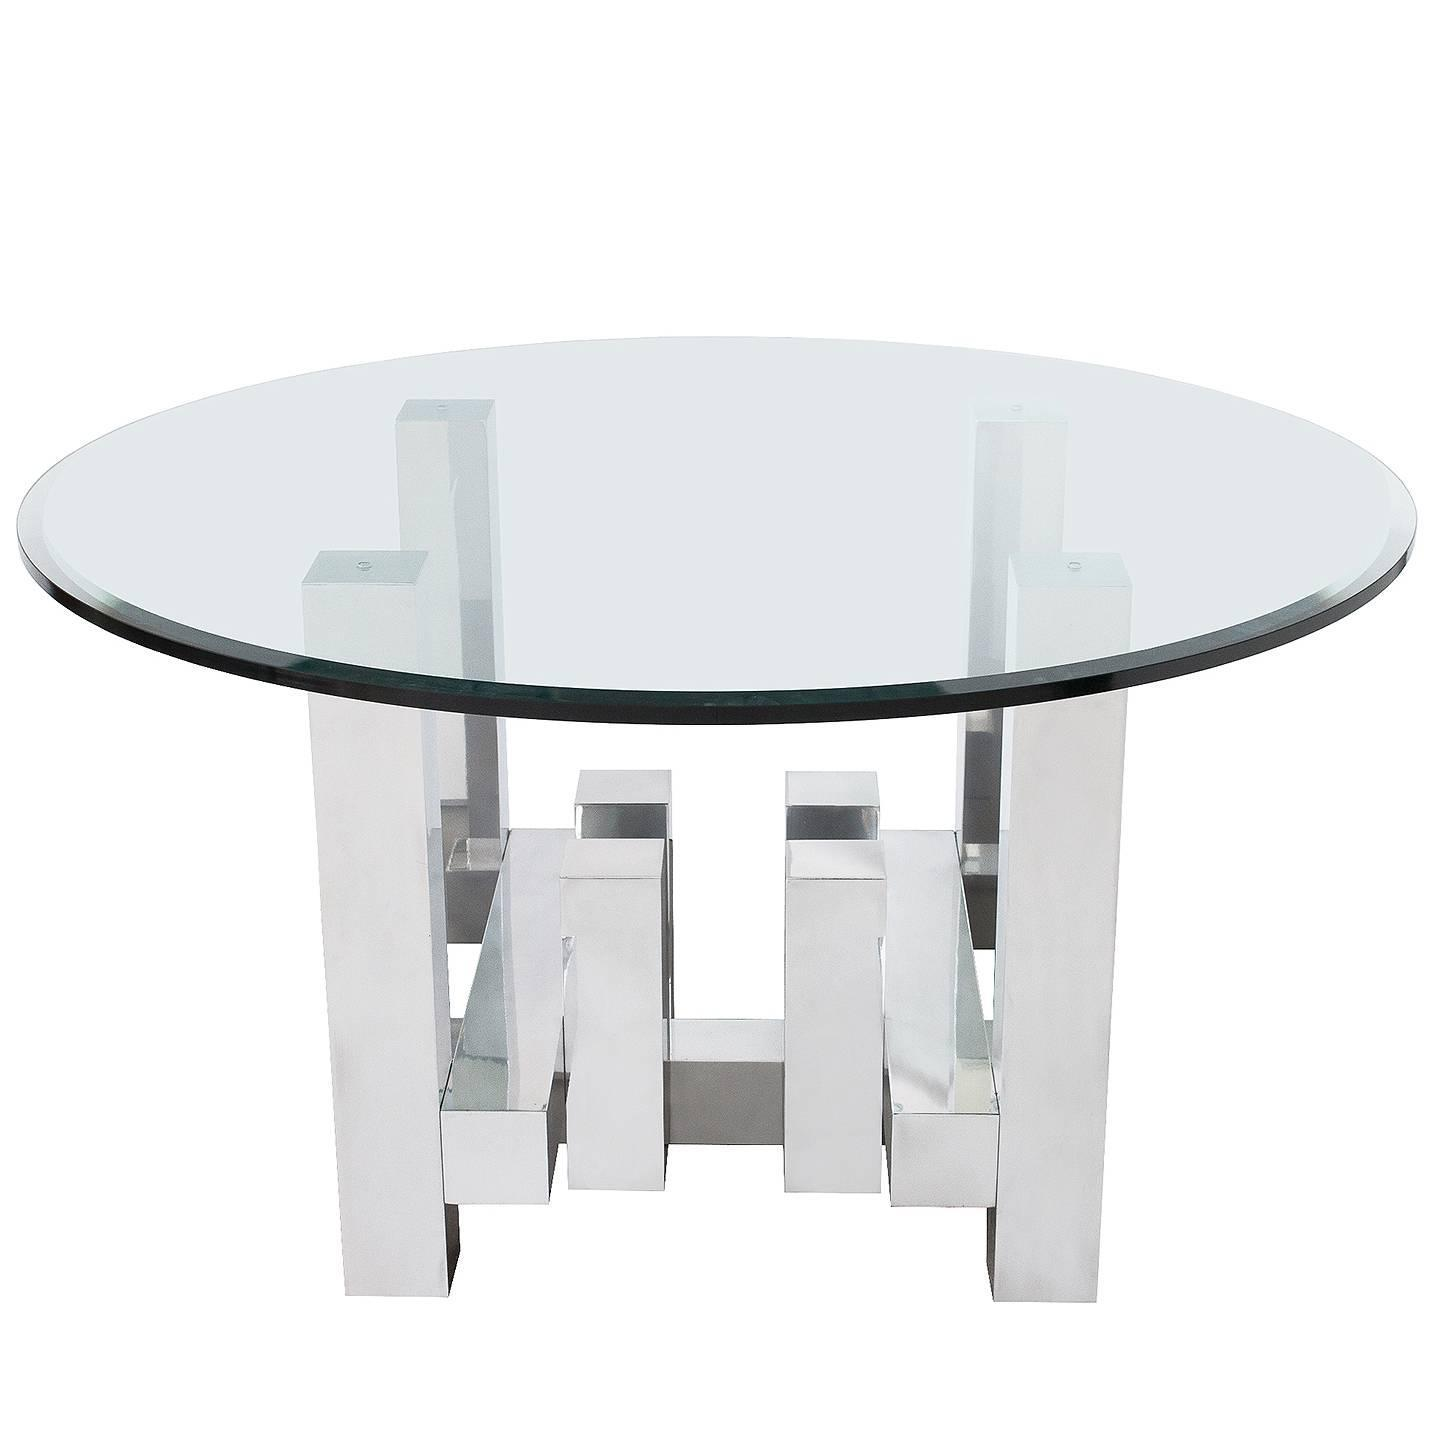 Paul Evans Style Aluminum Geometric Cityscape Dining Table at 1stdibs